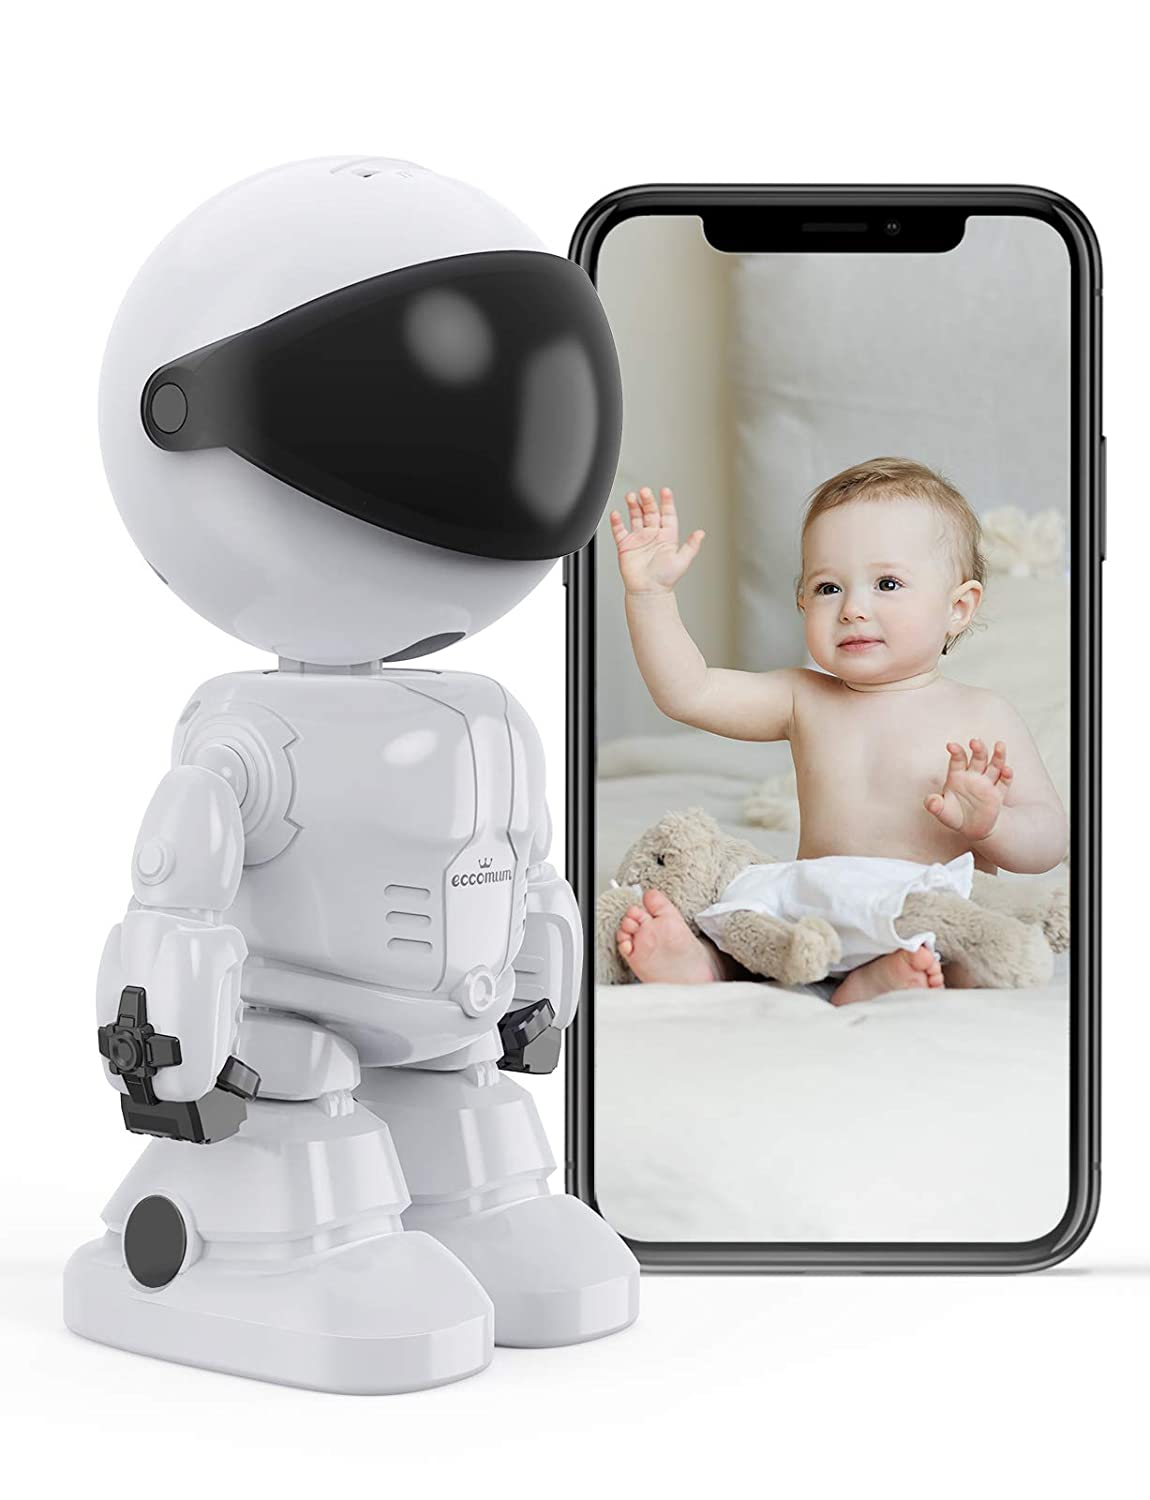 Baby Monitor, eccomum 1080P Indoor Security camera, Pet Camera with Camera and Audio, Pan/Tilt/Zoom Toddler Monitor, 2-Way Talk, Night Vision, Pan-tilt Control, Compatible with iOS & Android System